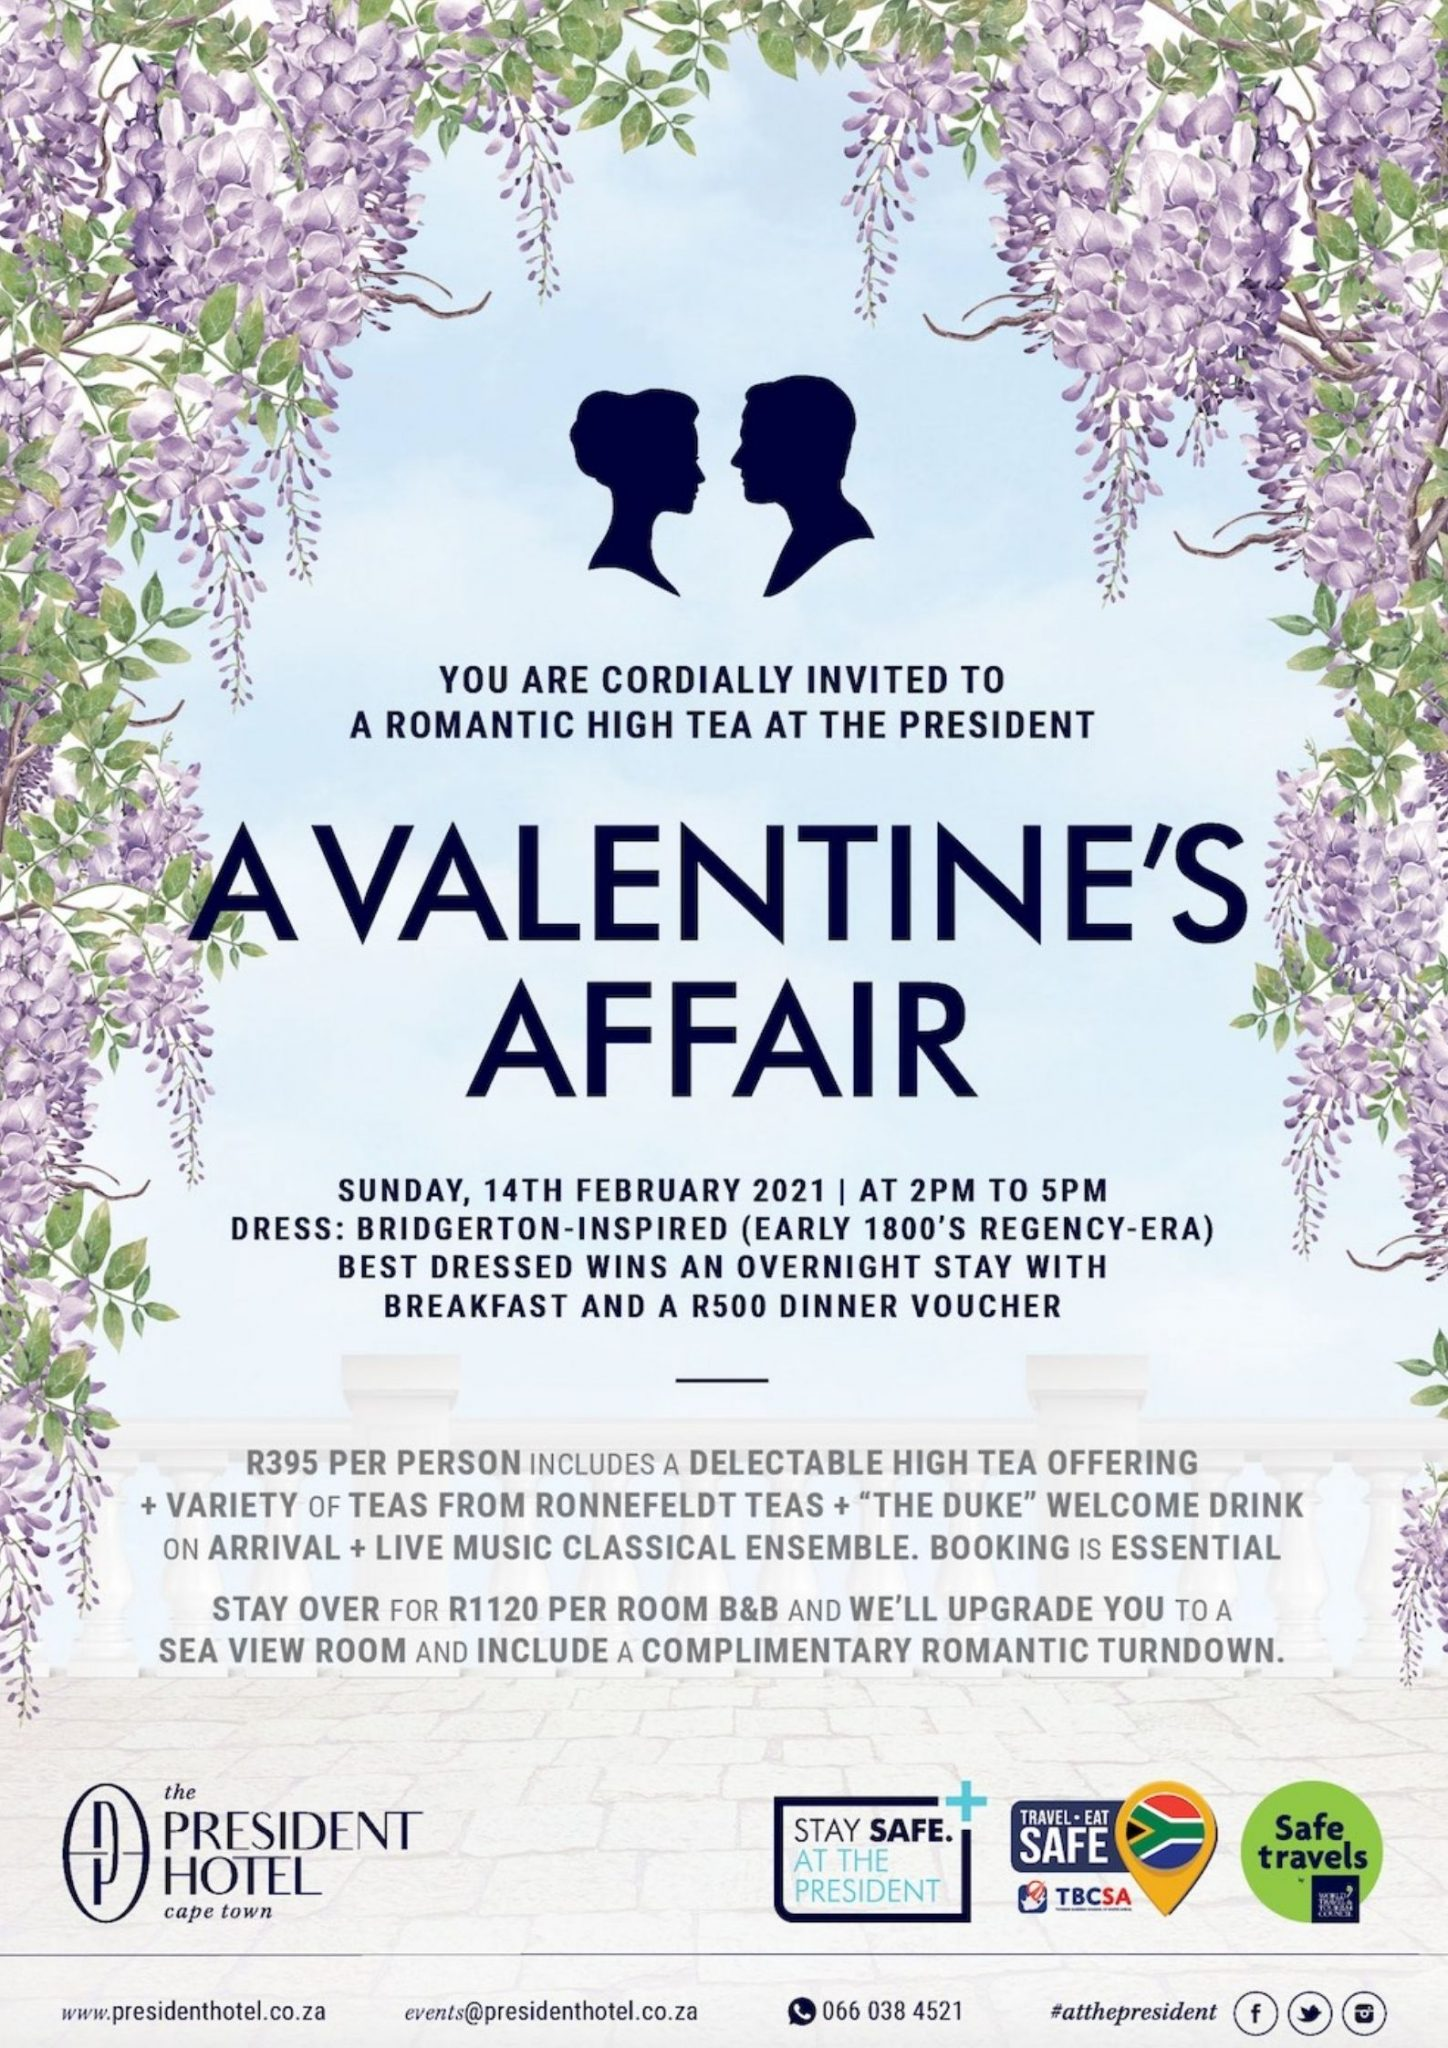 Valentine's Affair at The President Sunday 14 February 2pm - 5pm Sonia Cabano blog eatdrinkcapetown